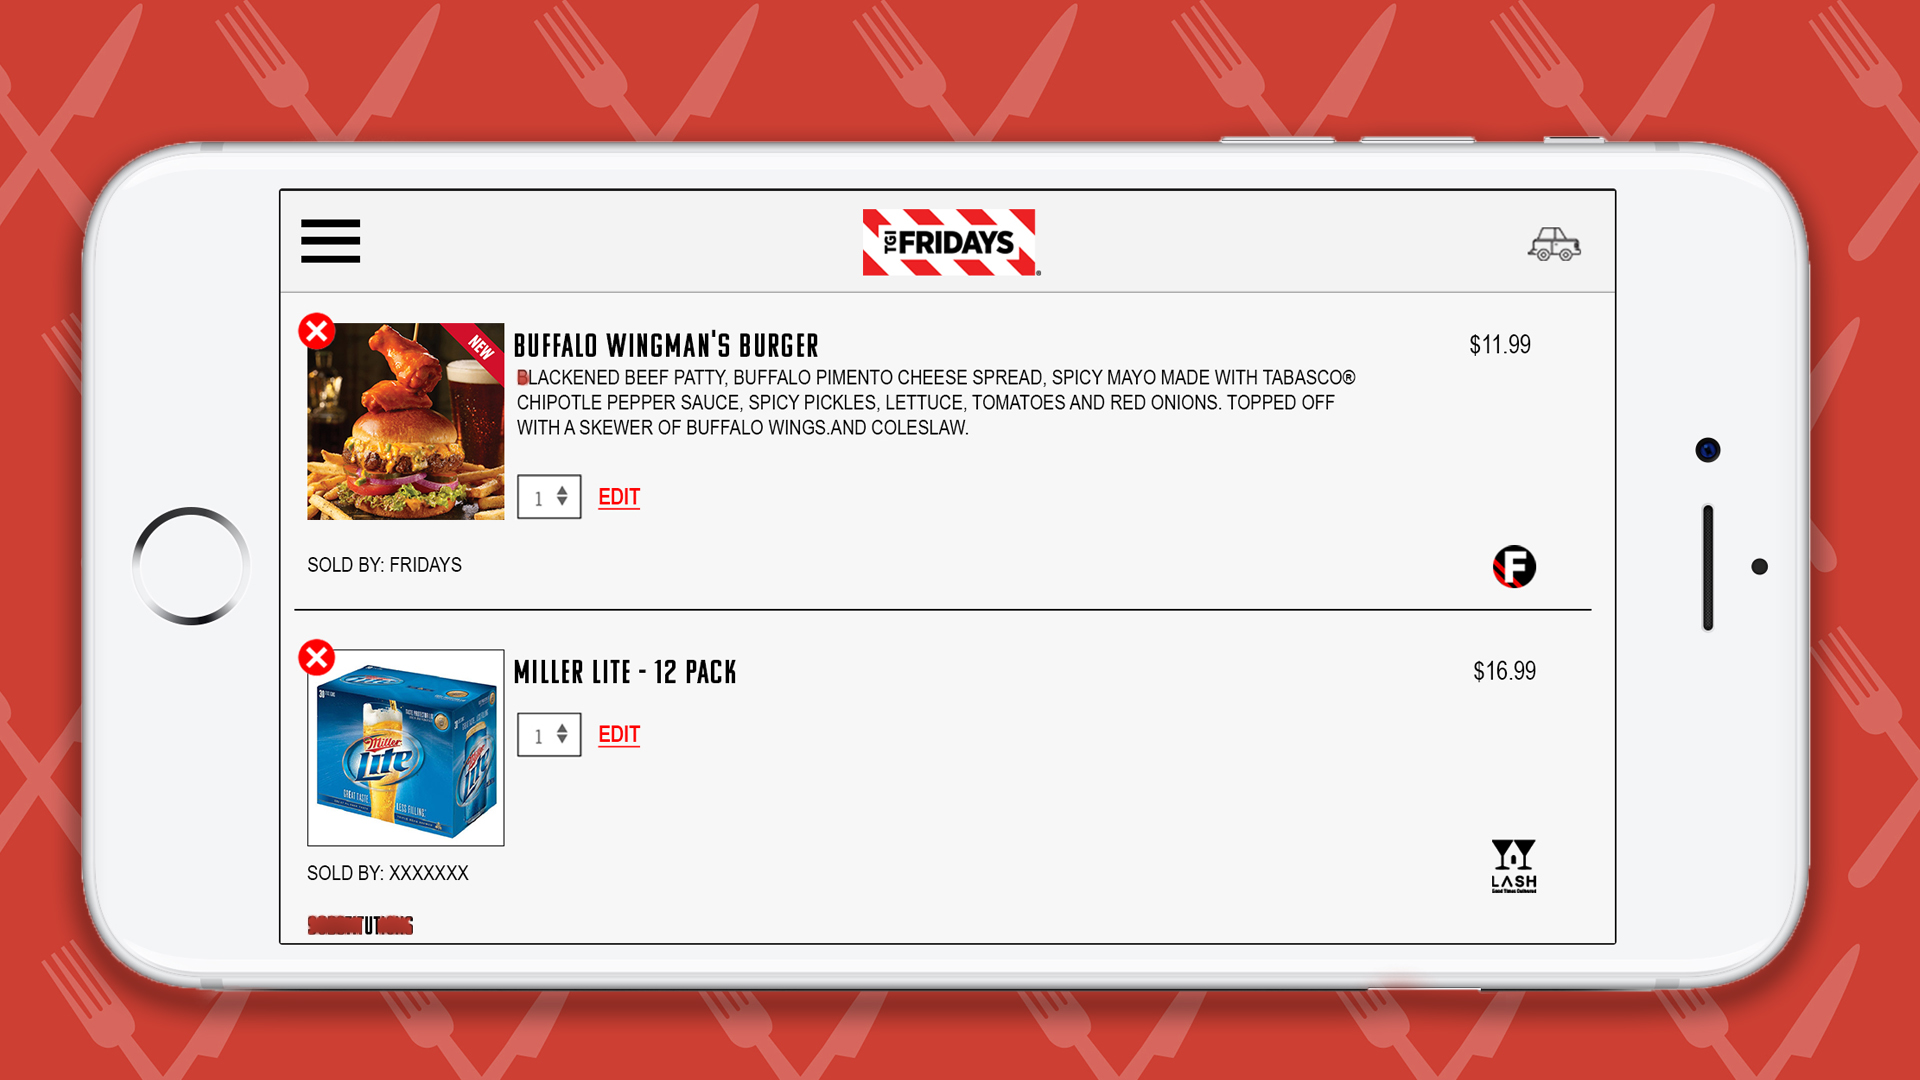 service management at tgi fridays Using the new fridays service style technology  tgi fridays partners with microsoft on tablets to streamline orders, improve customers' visits.